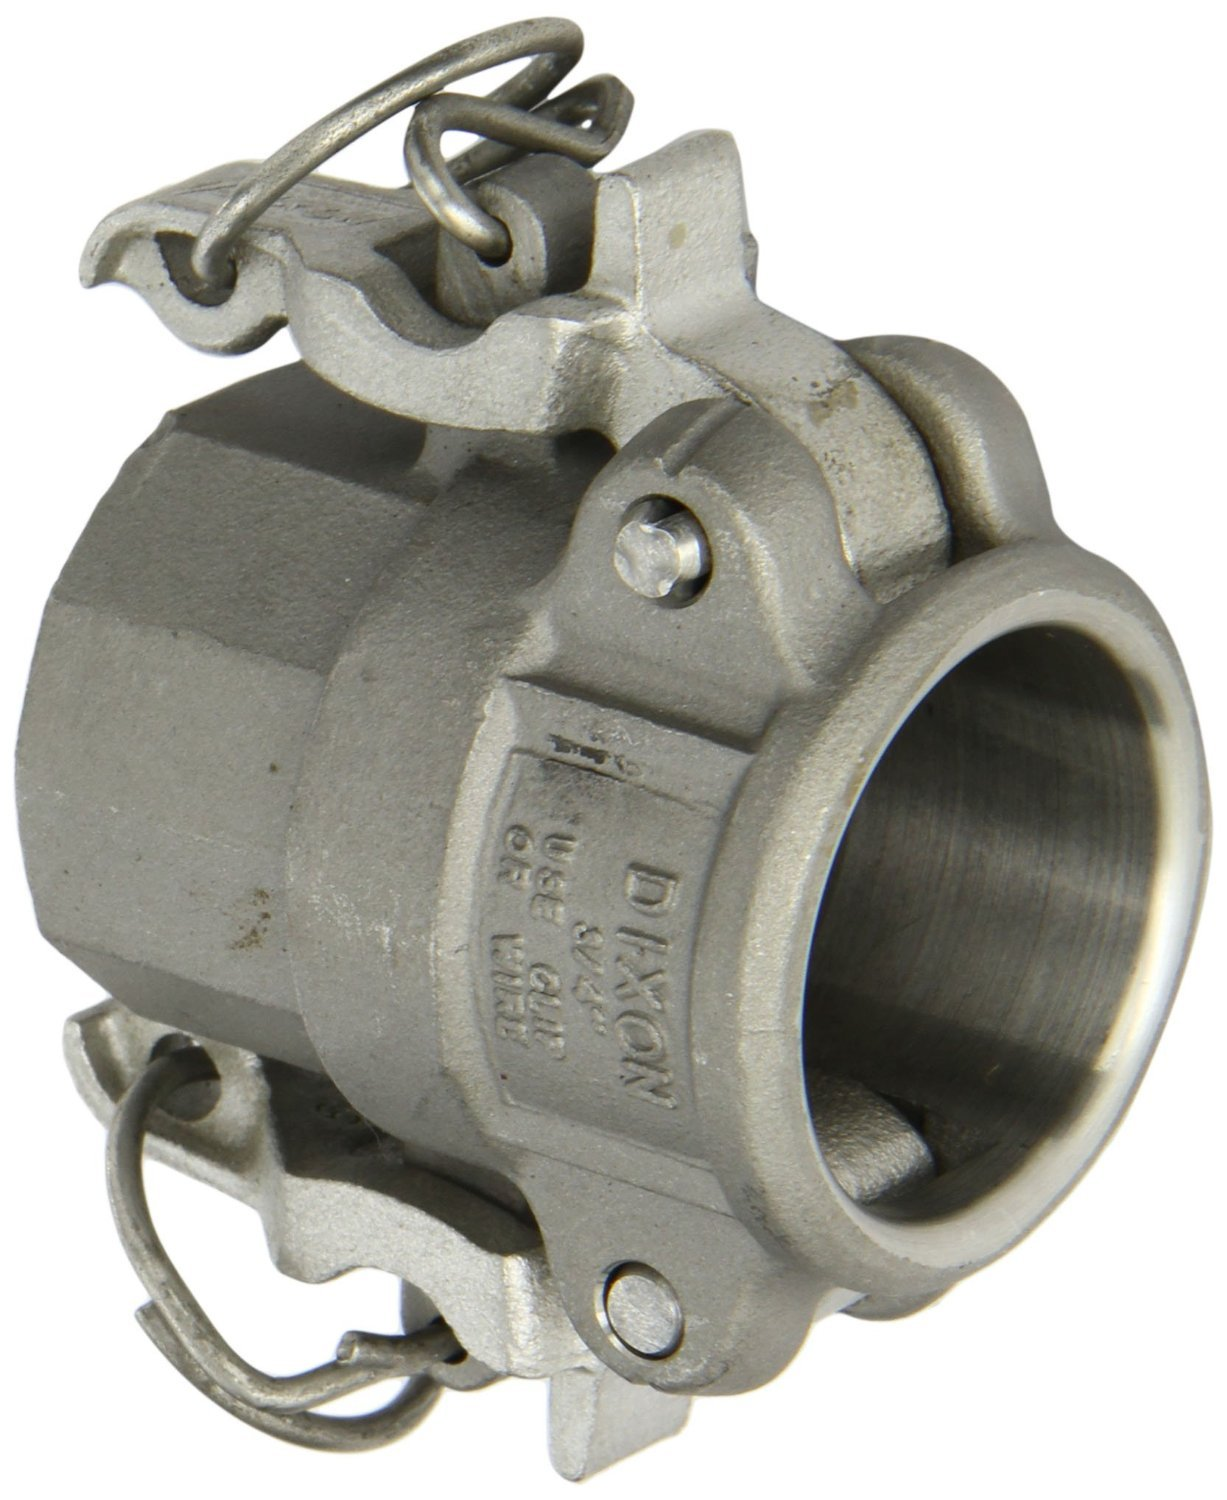 Dixon RD075BL Stainless Steel 316 Boss-Lock Type D Cam and Groove Hose Fitting, 3/4'' Socket x 3/4'' NPT Female